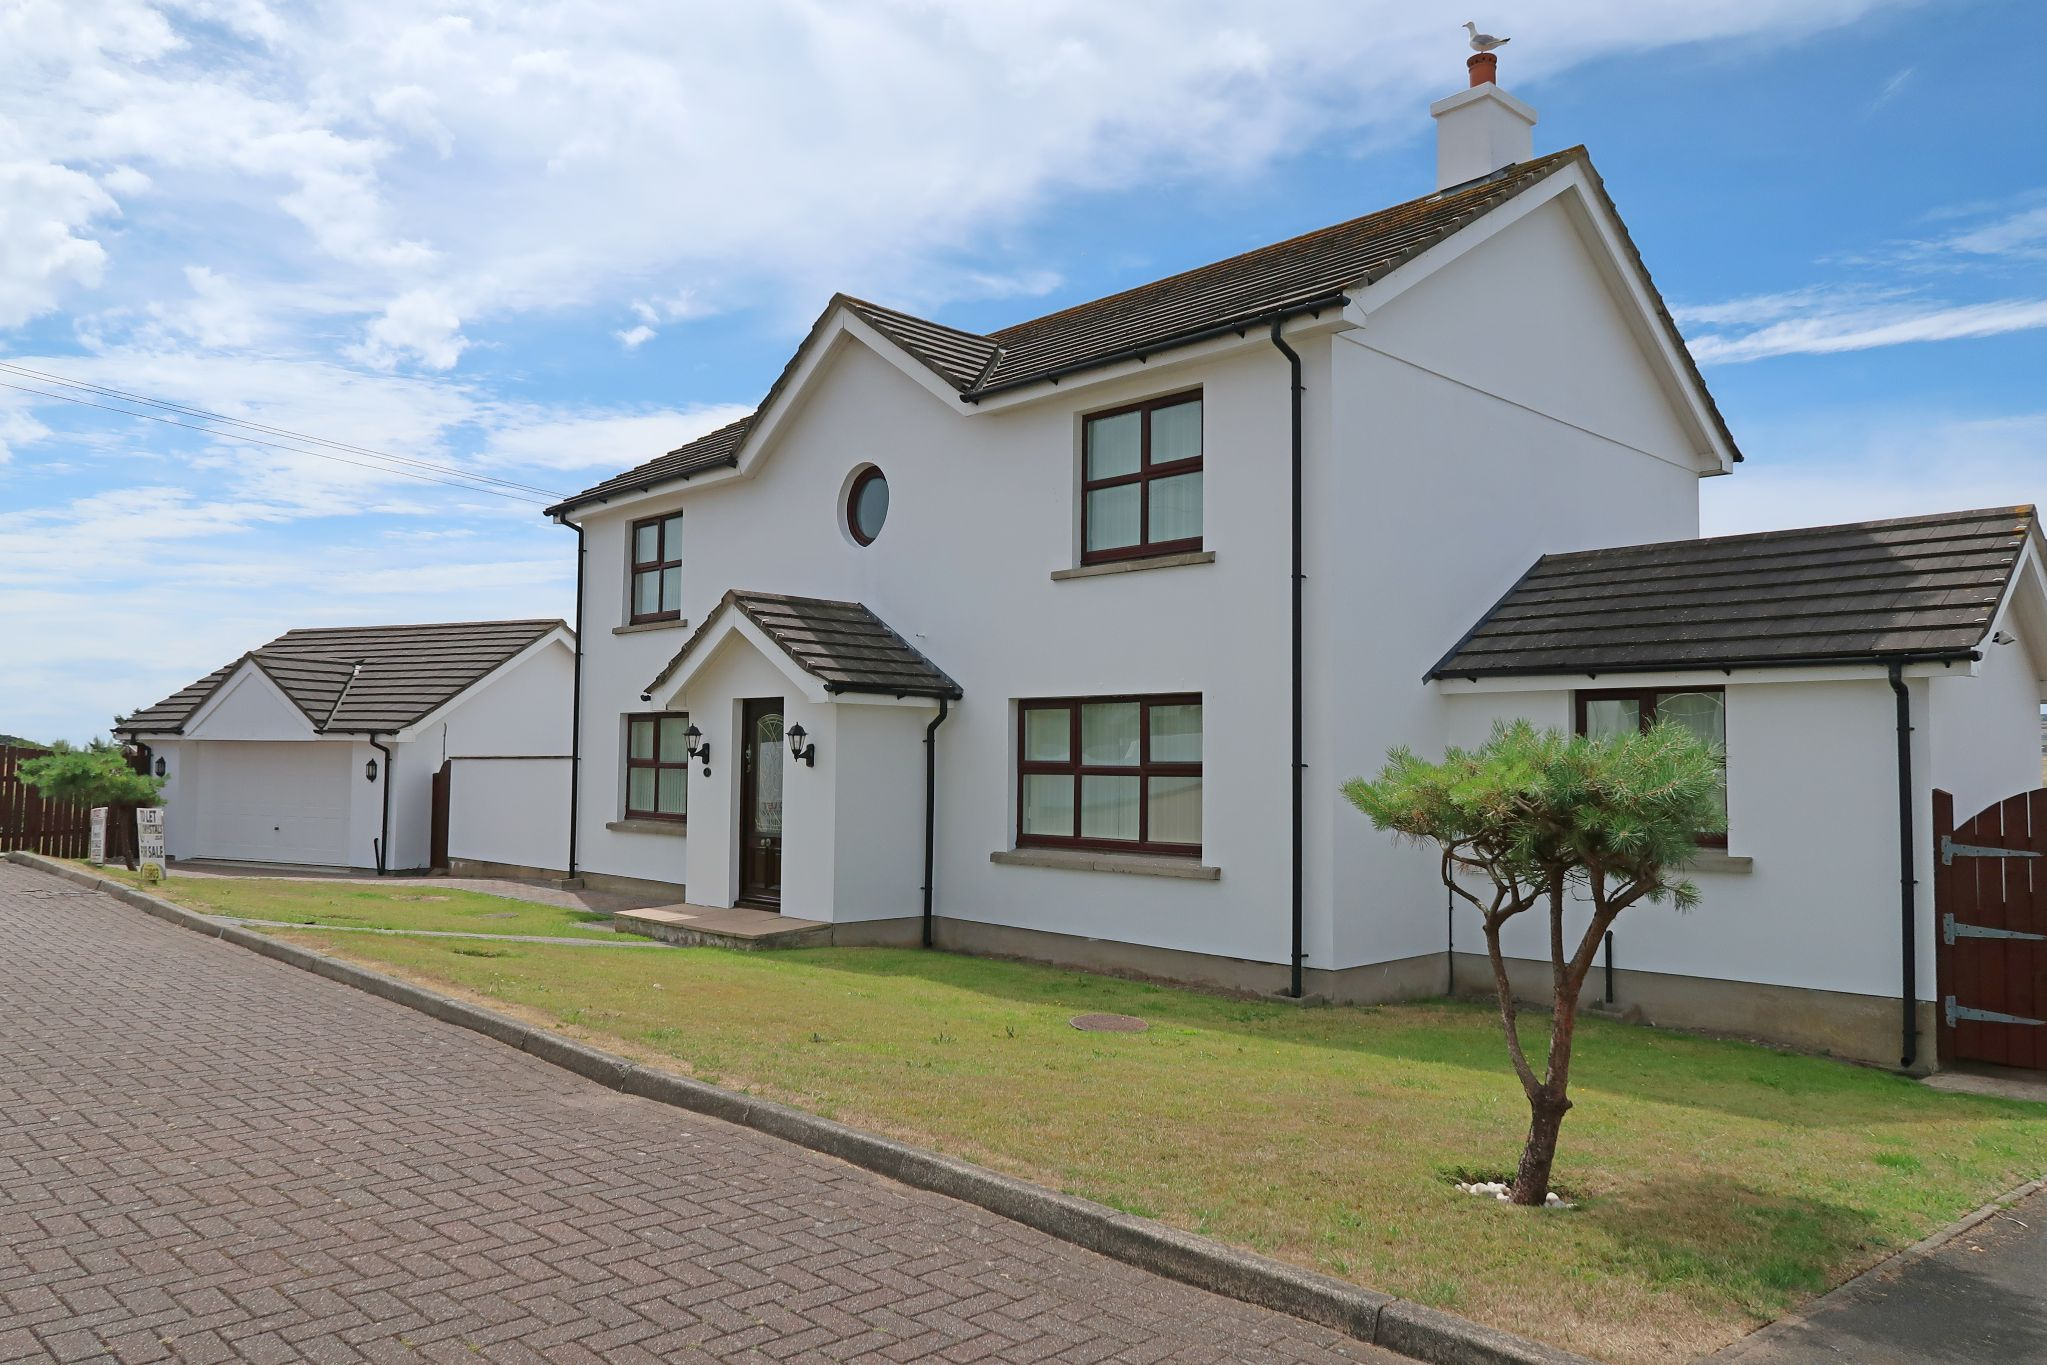 4 bedroom detached house For Sale in Colby - Photograph 1